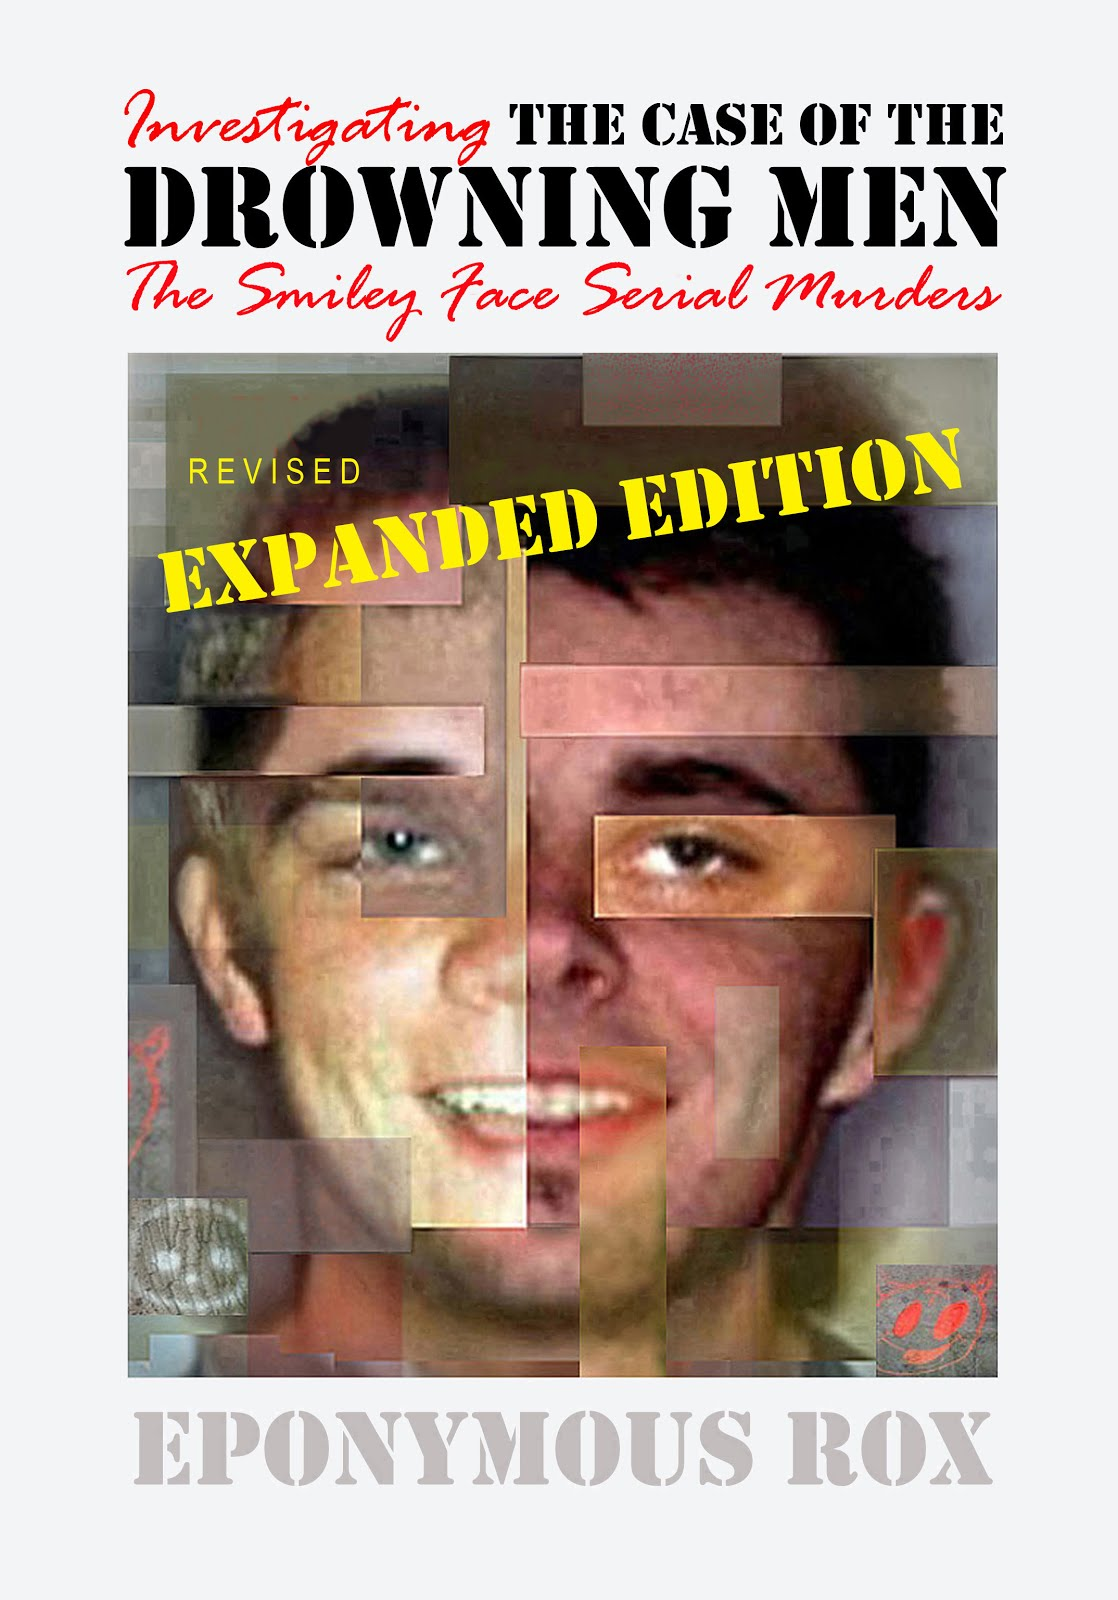 History and analysis of the 'Smiley Face Murders'  with pics and forensics